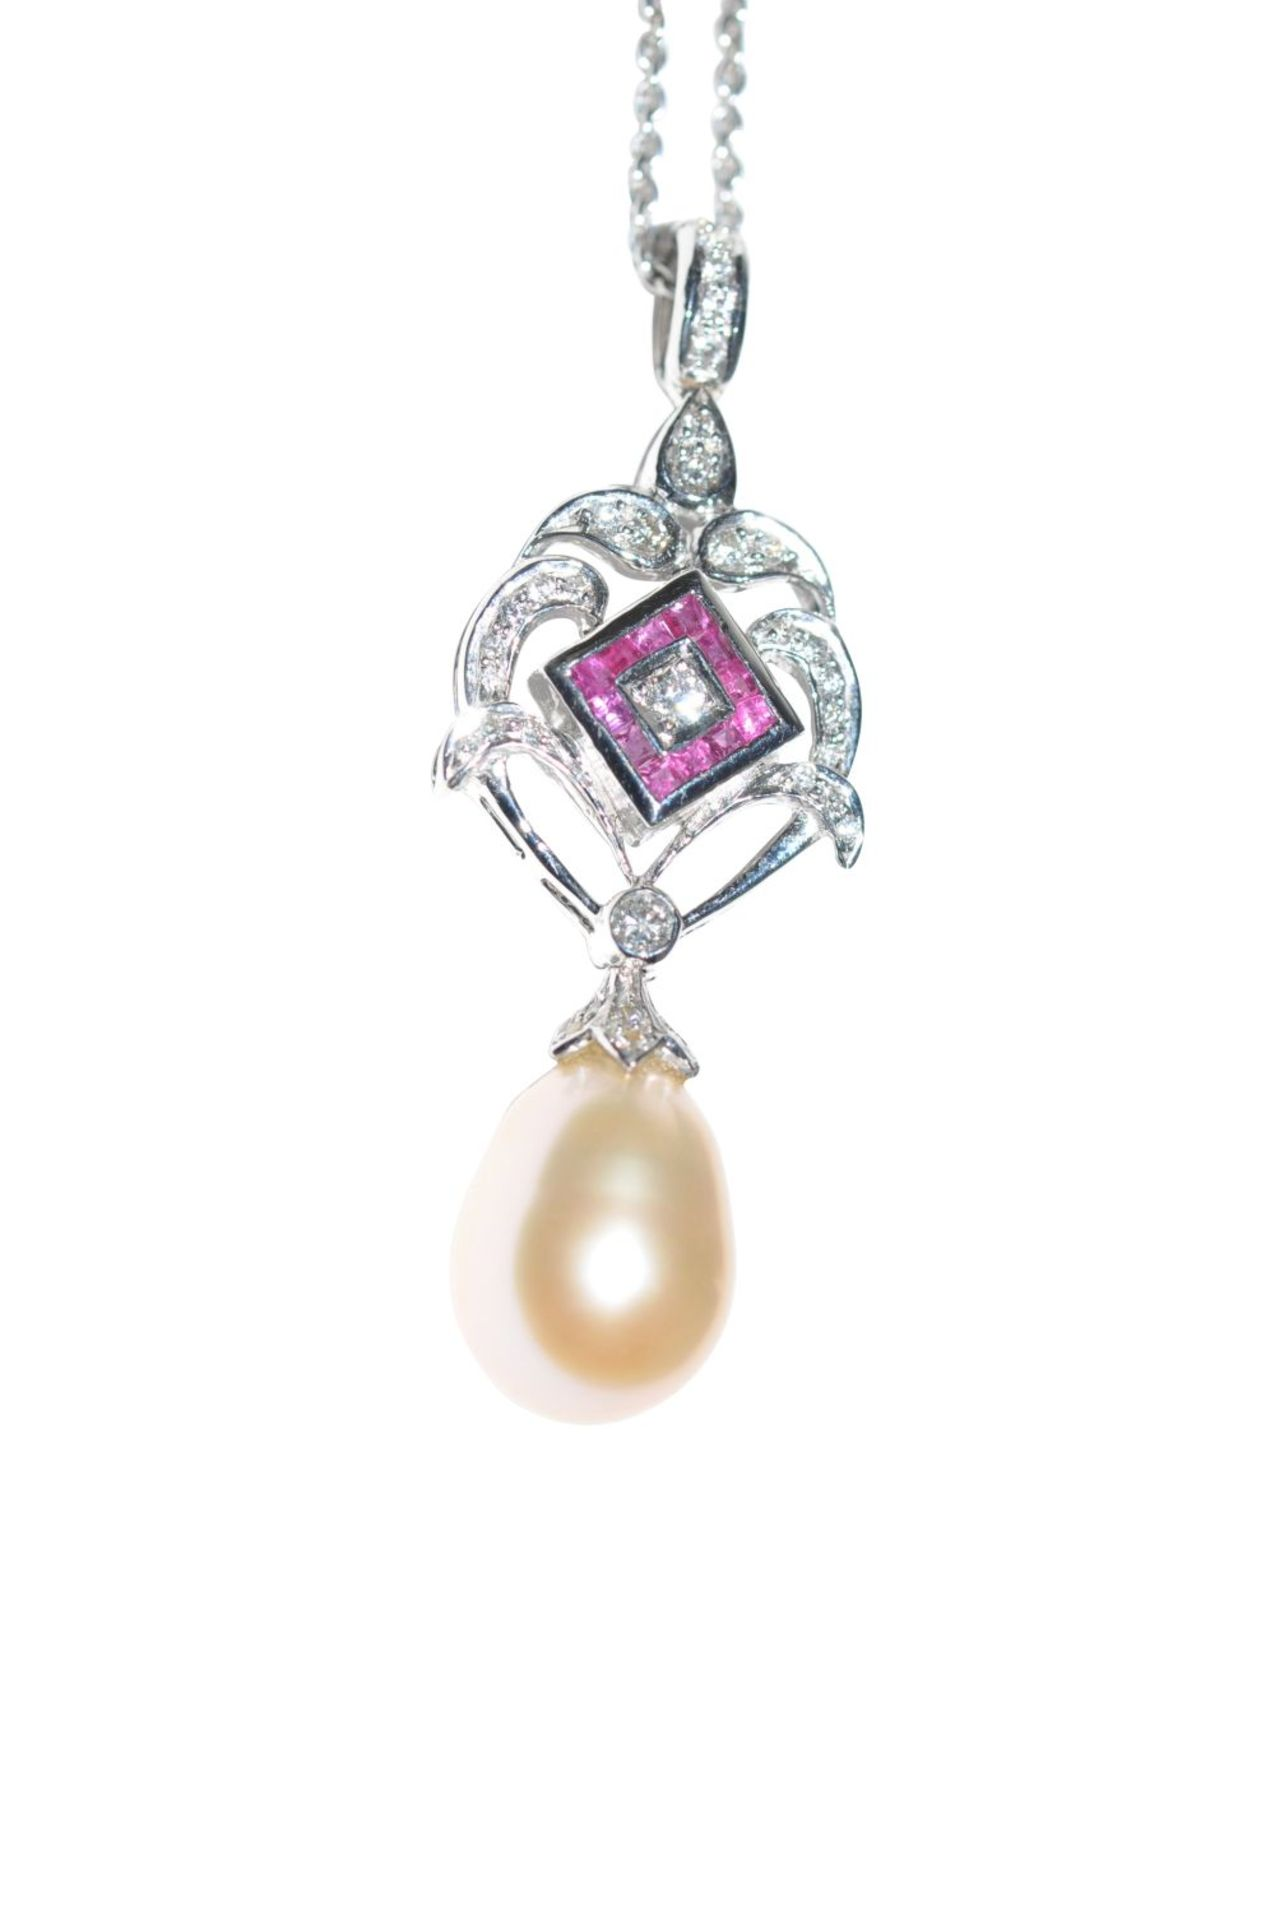 Los 96 - Pendant with chainWhite gold pendant, 18kt, with diamonds approx. 0.27ct, a ruby, approx. 0.27ct and